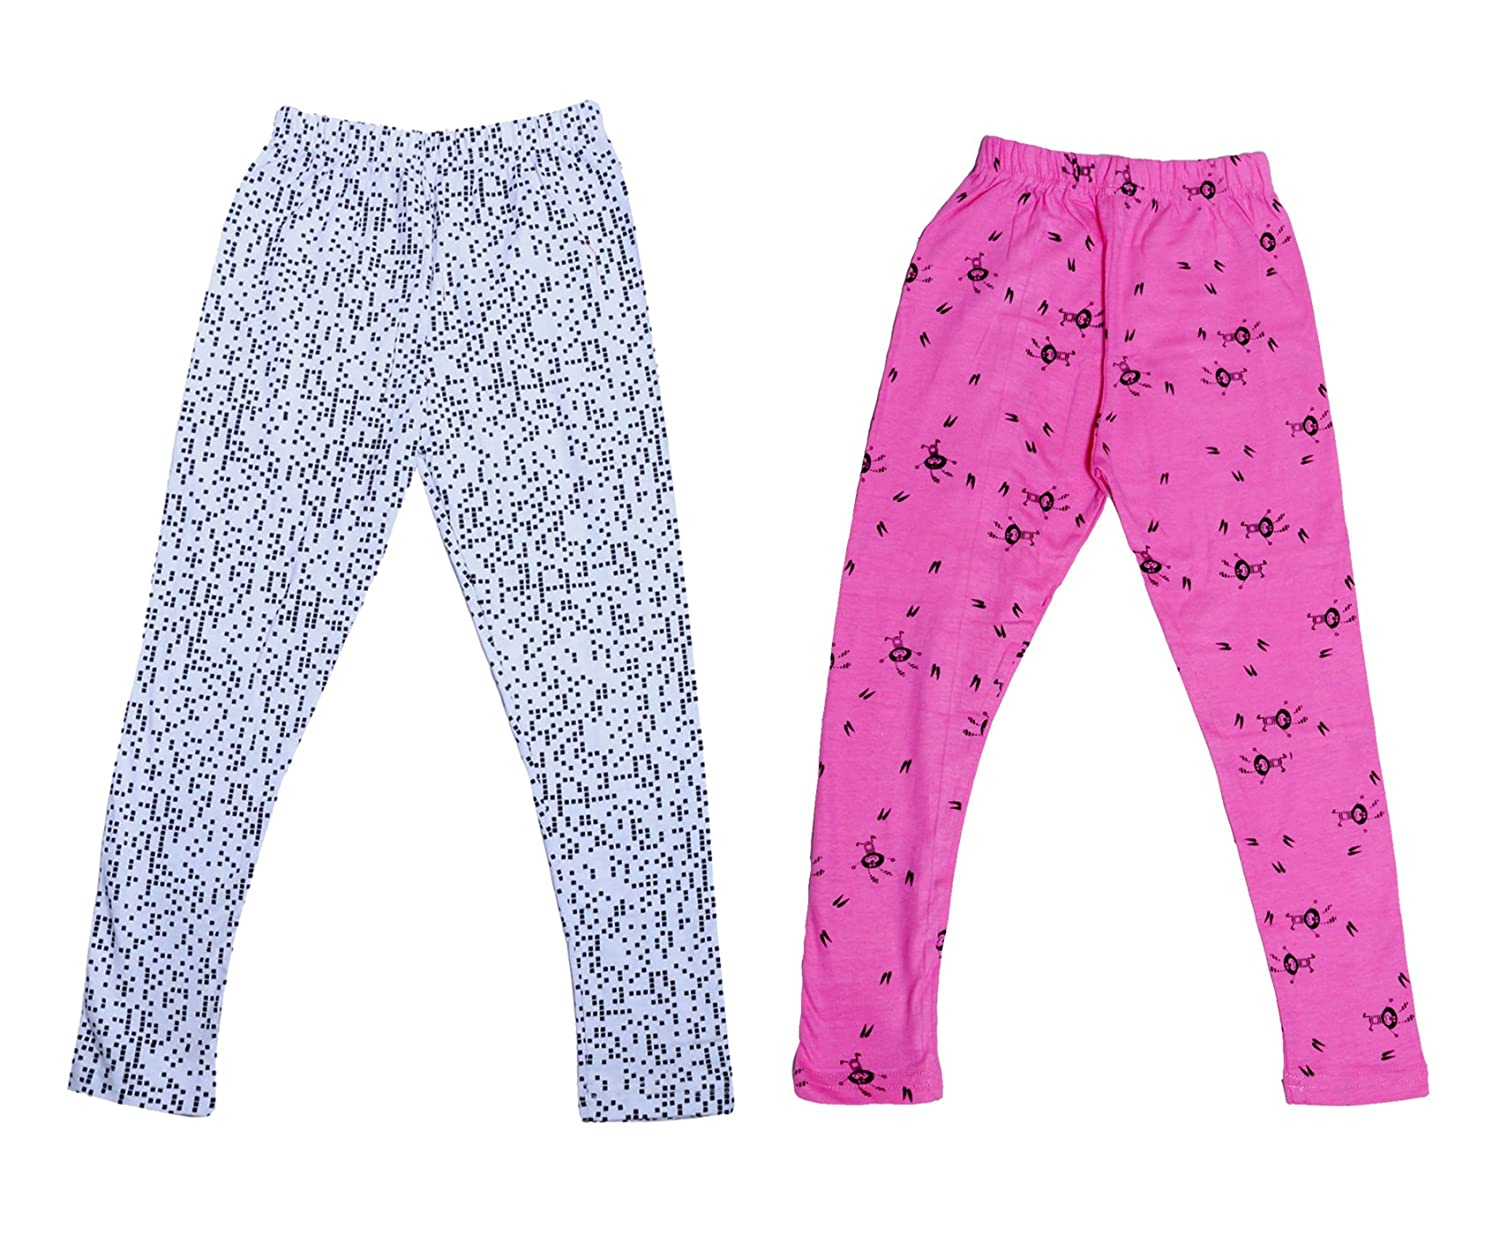 Indistar Girls Super Soft and Stylish Cotton Printed Churidar Legging Pack of 2